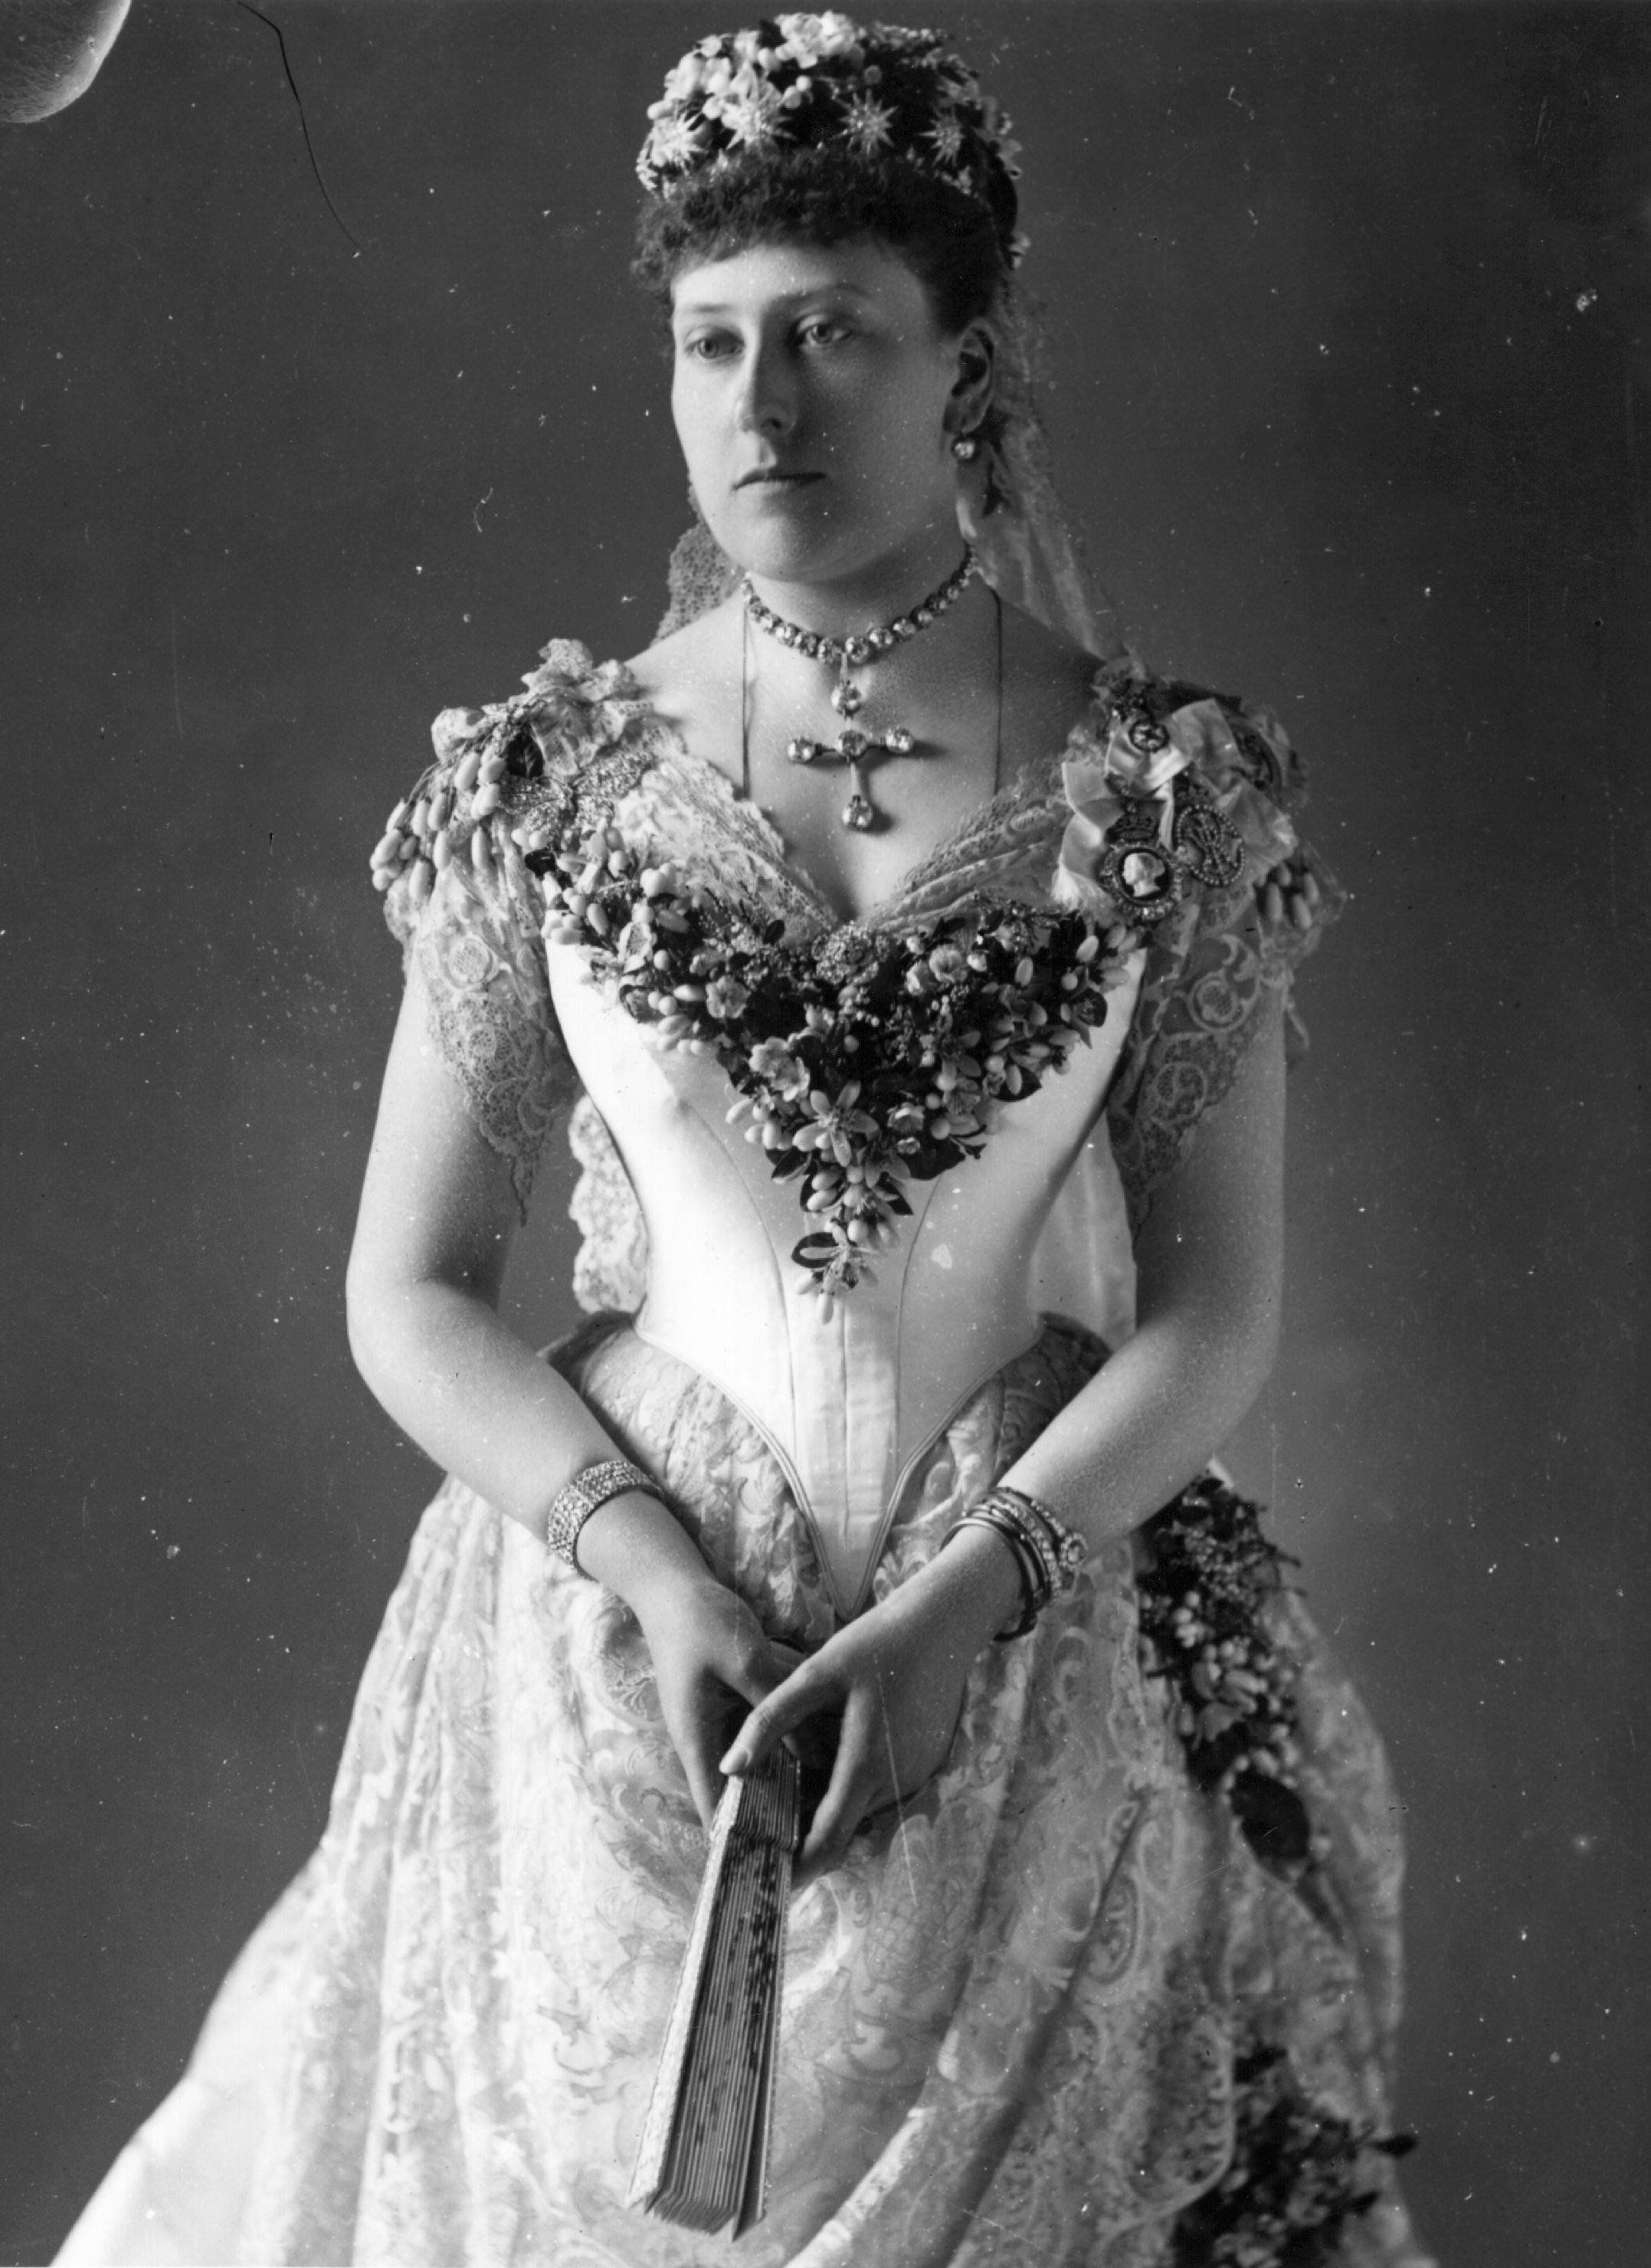 circa 1885: Princess Beatrice, (1857 - 1944), the youngest daughter of Queen Victoria. She married Prince Henry of Battenberg in 1885. (Photo by Hulton Archive/Getty Images)